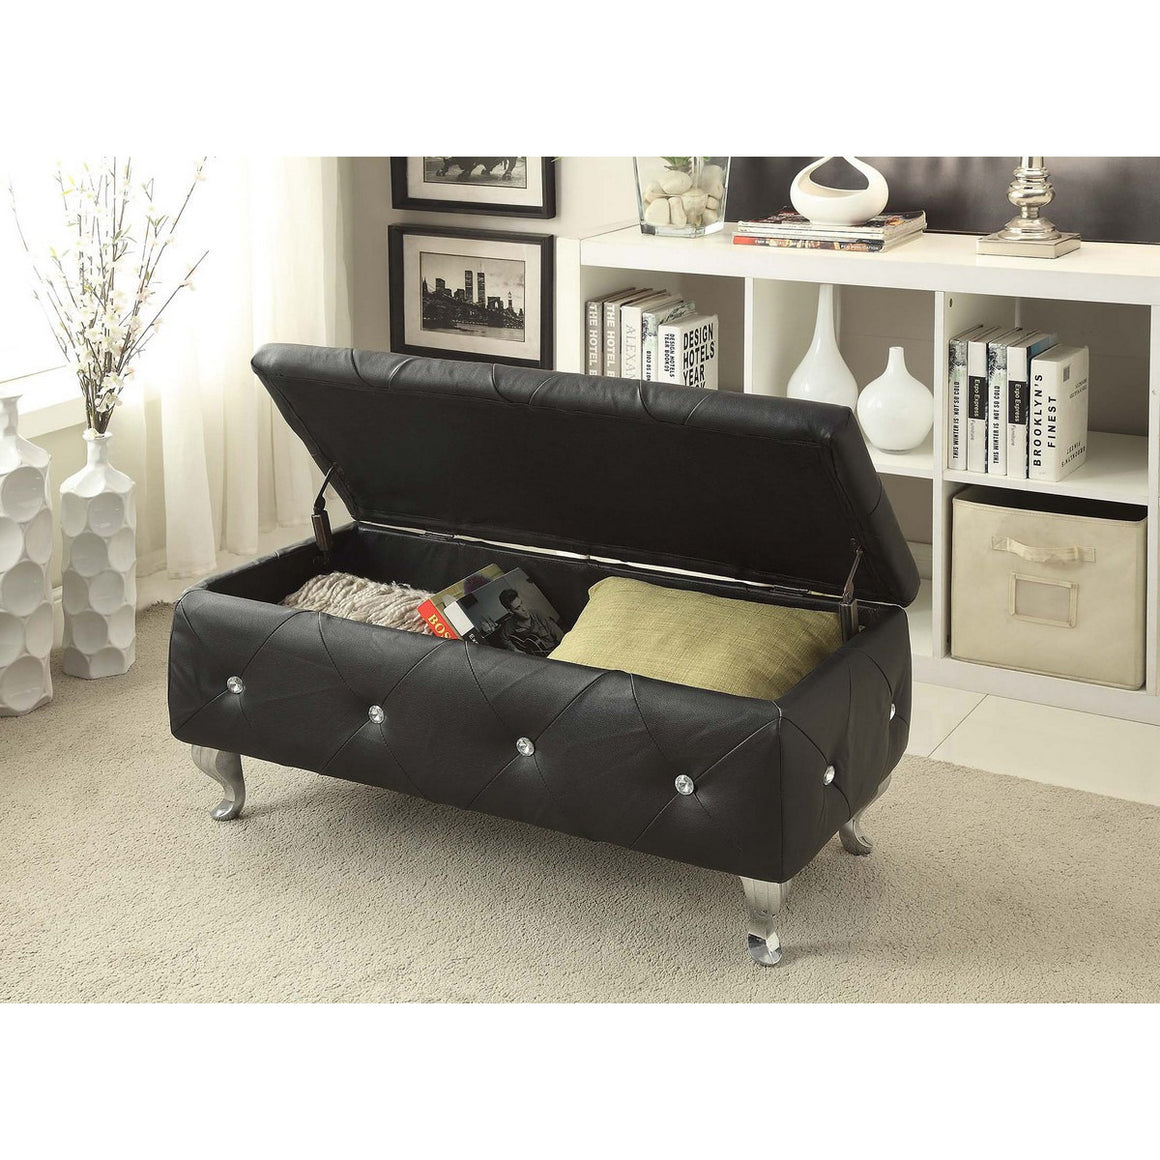 Ac Pacific Black Crystal Tufted Storage Bench AC-BED16-BLK-BENCH